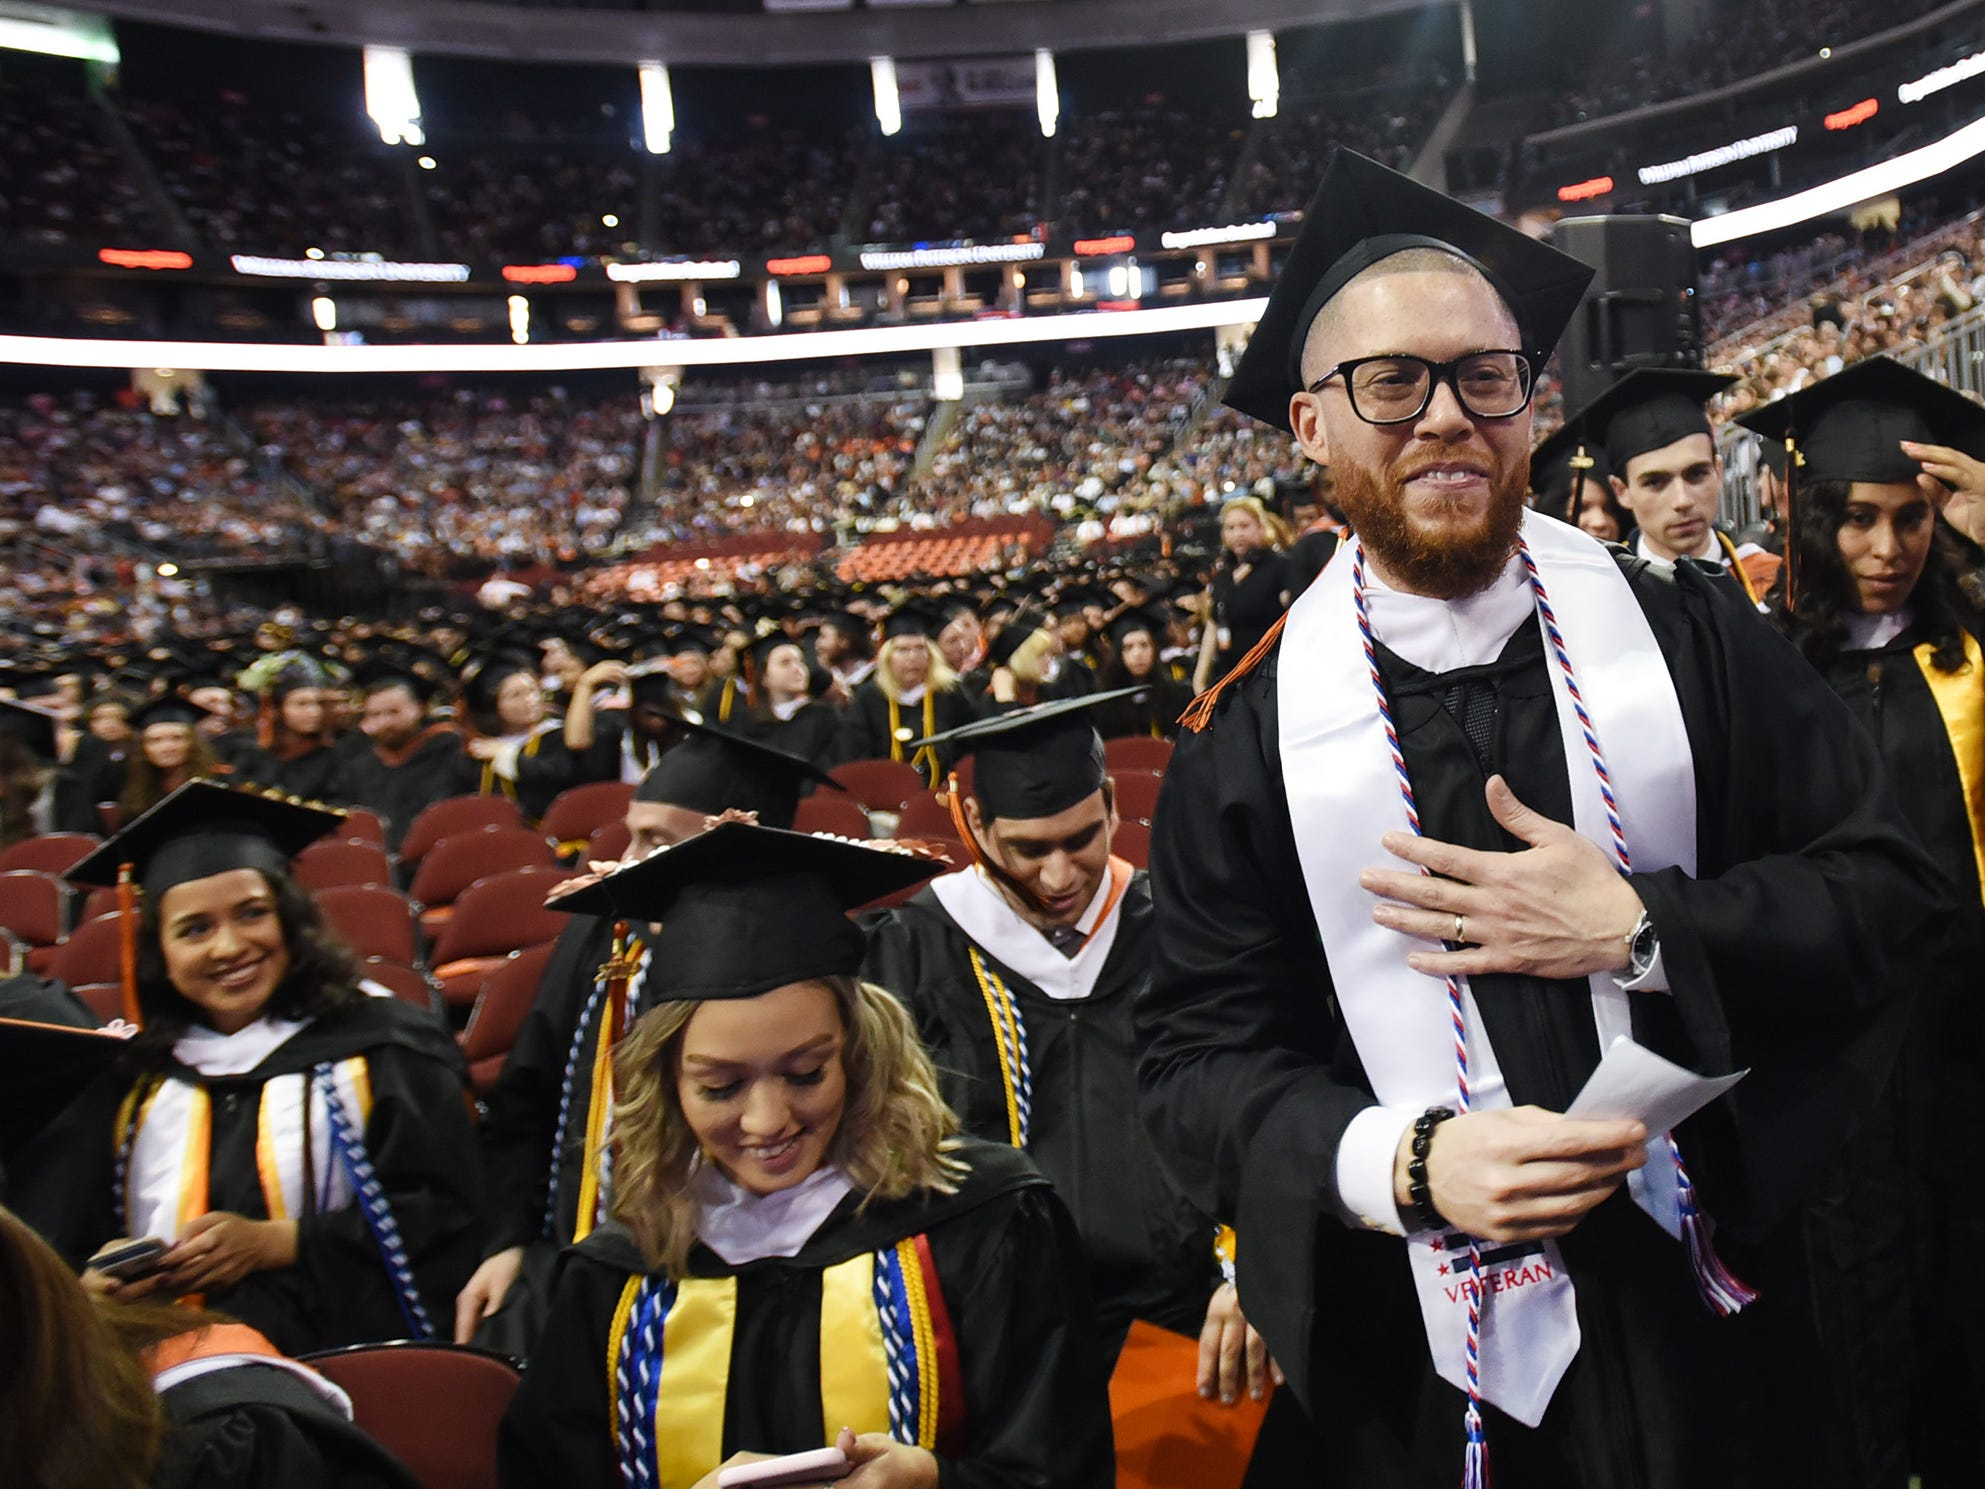 Jacob Martinez (age 36), of Weehawken, who Majored in Broadcast Journalism, an Army veteran and native of Puerto Rico, stands in line to receive his degree during the William Paterson University 2019 Commencement at the Prudential Center in Newark on 05/15/19.